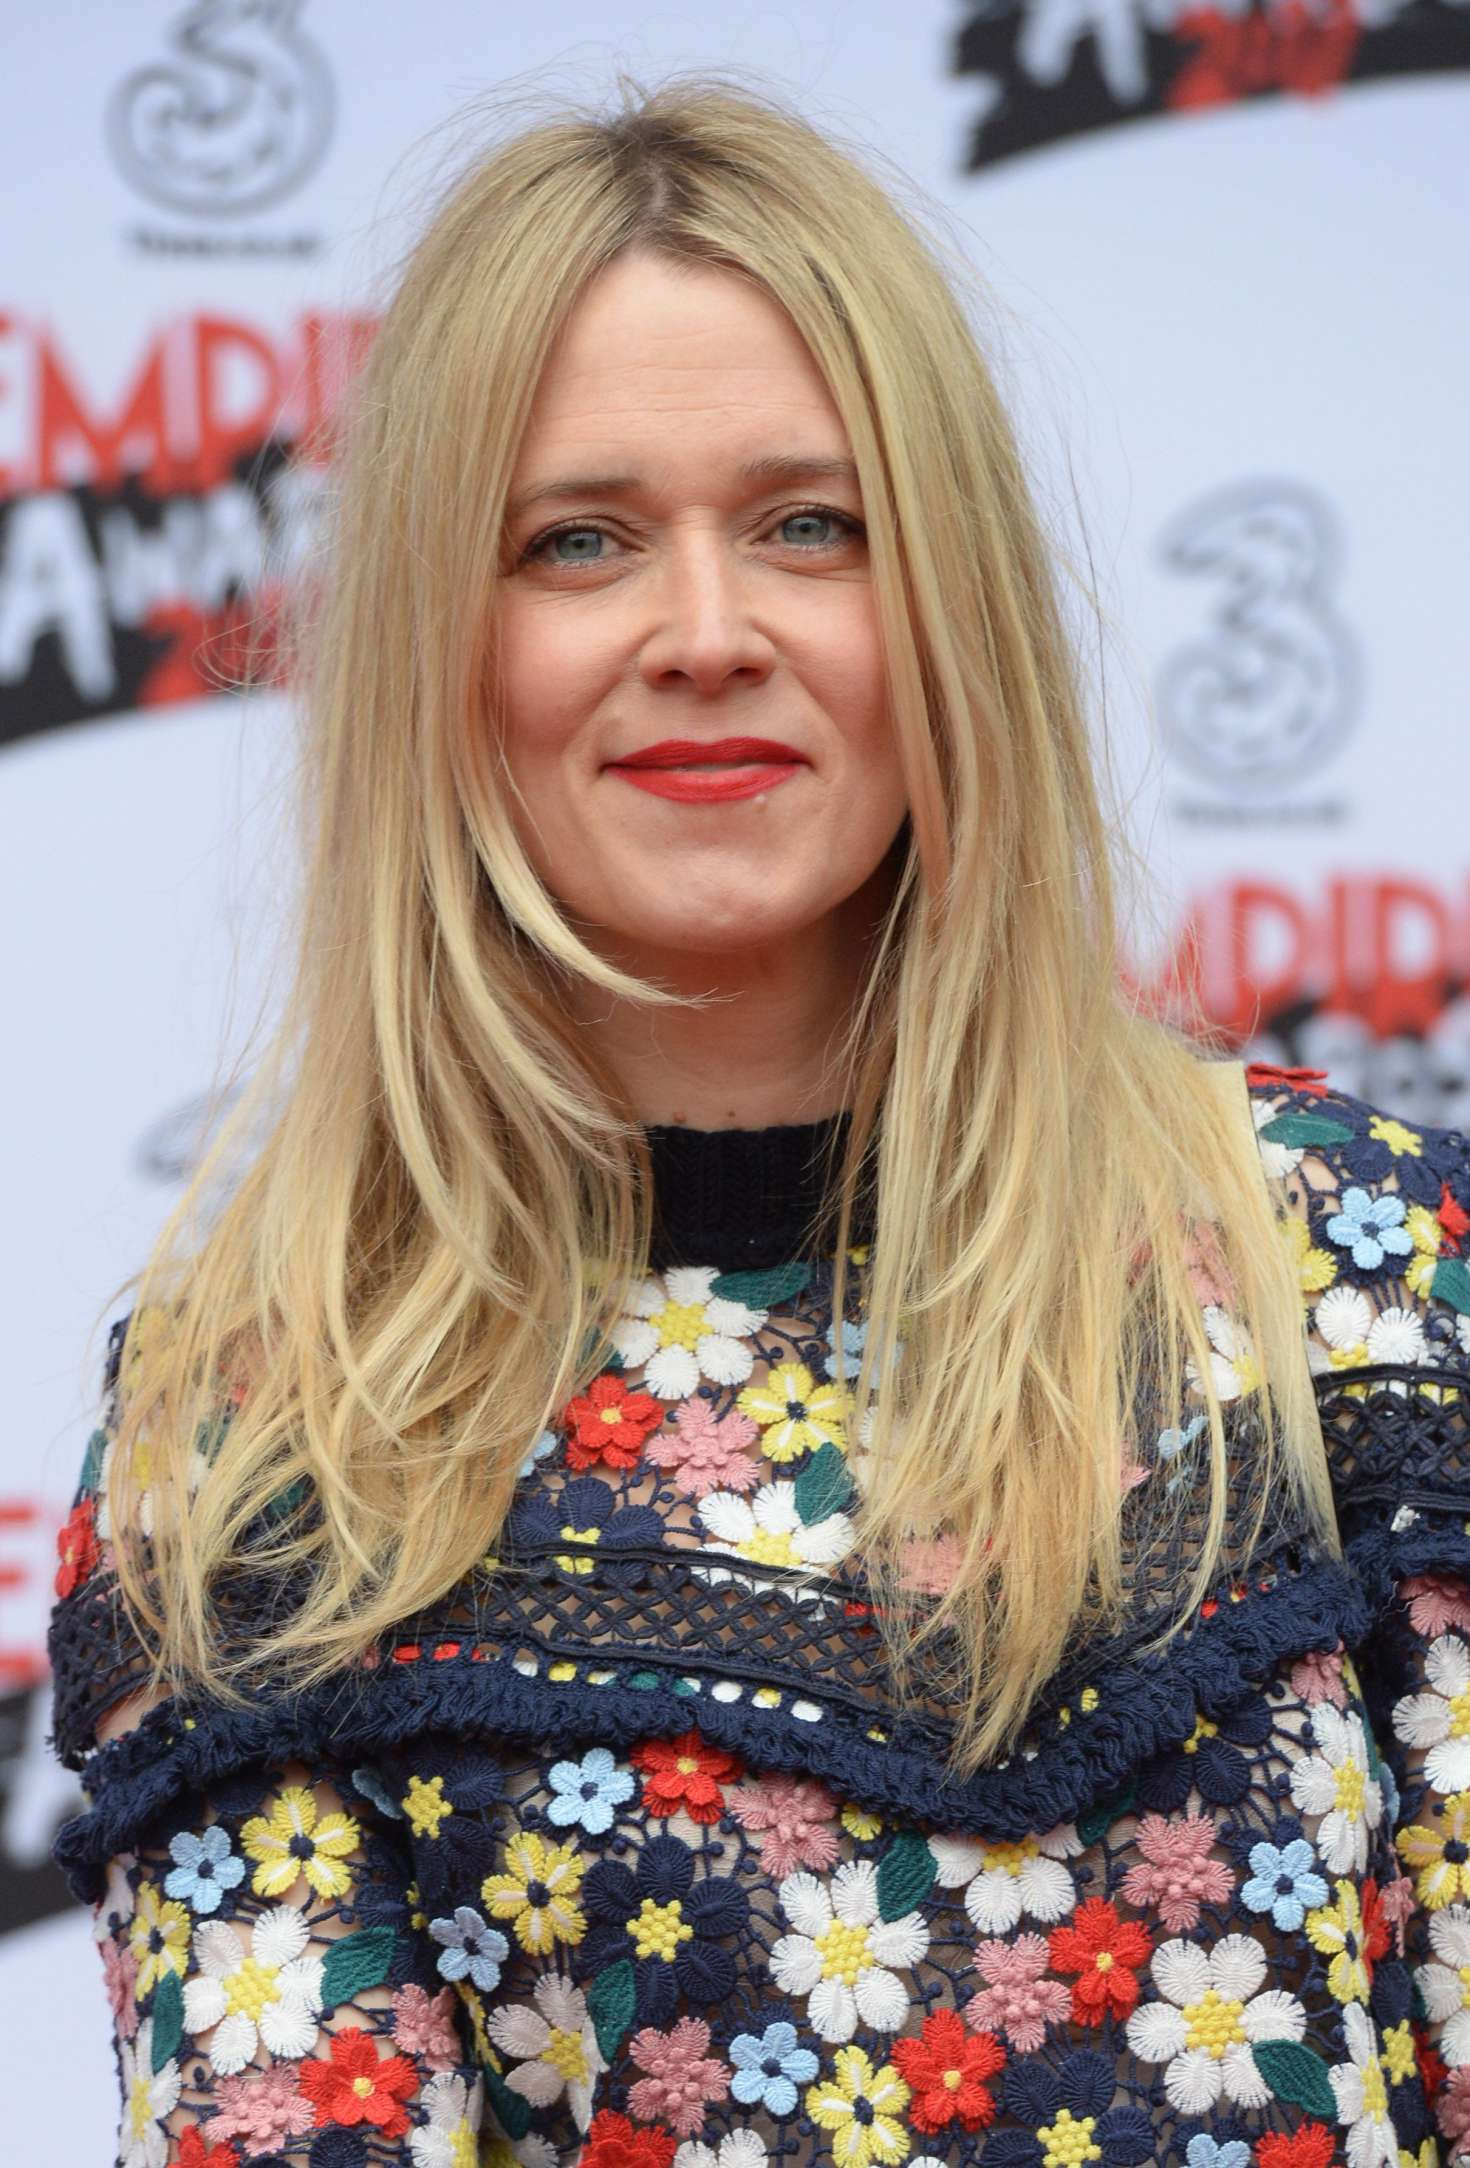 Pictures Edith Bowman naked (15 foto and video), Sexy, Fappening, Selfie, bra 2006